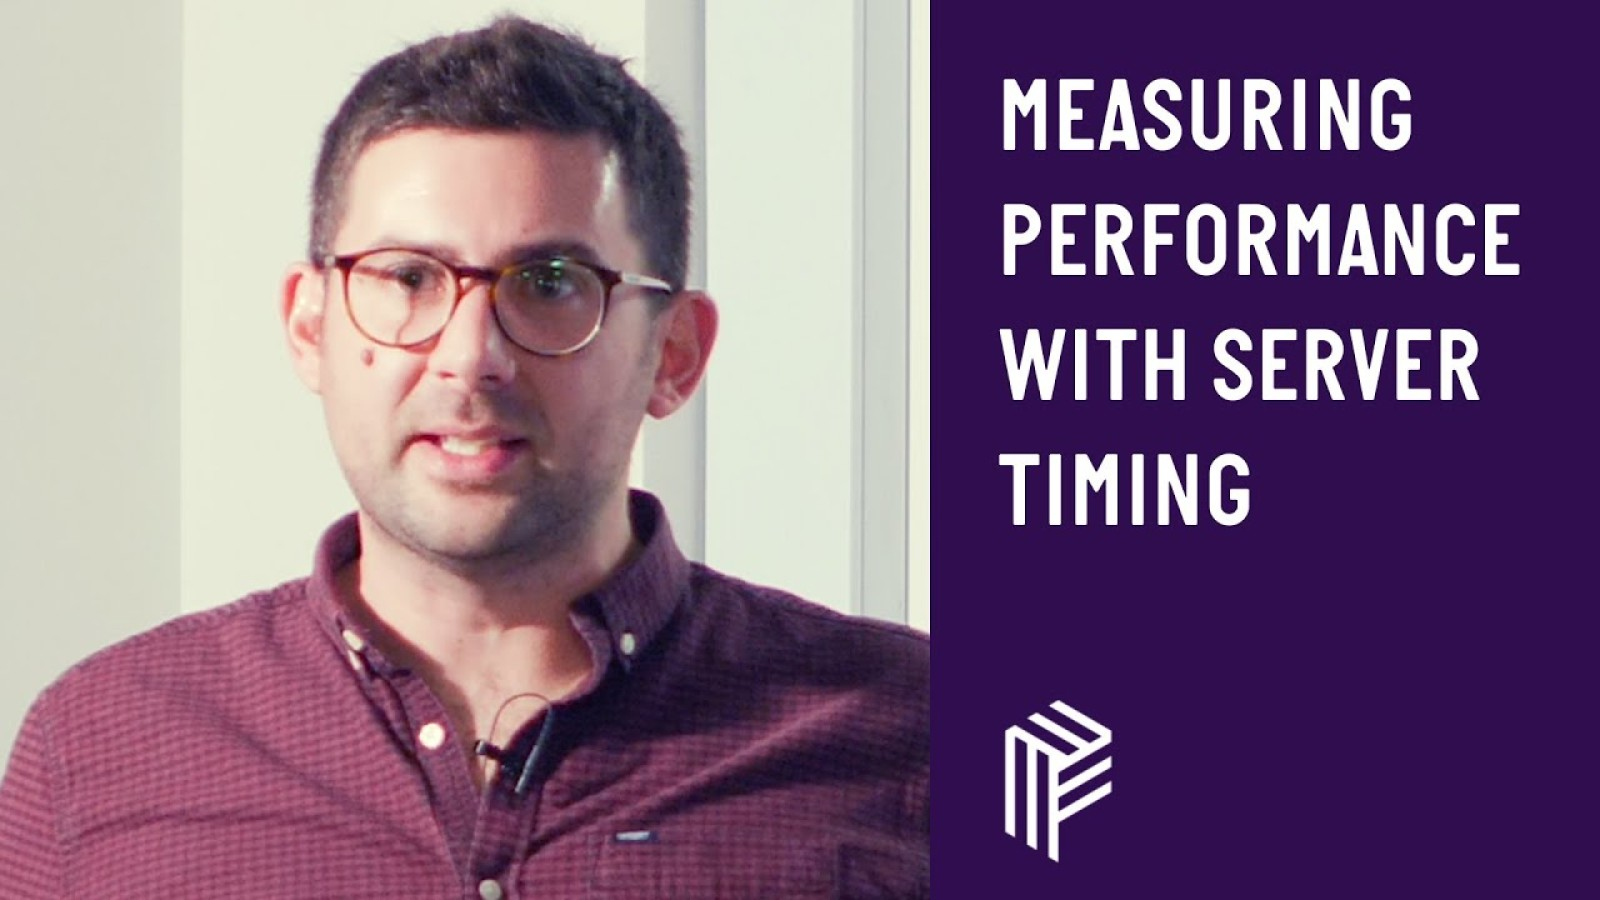 Measuring Performance with Server Timing